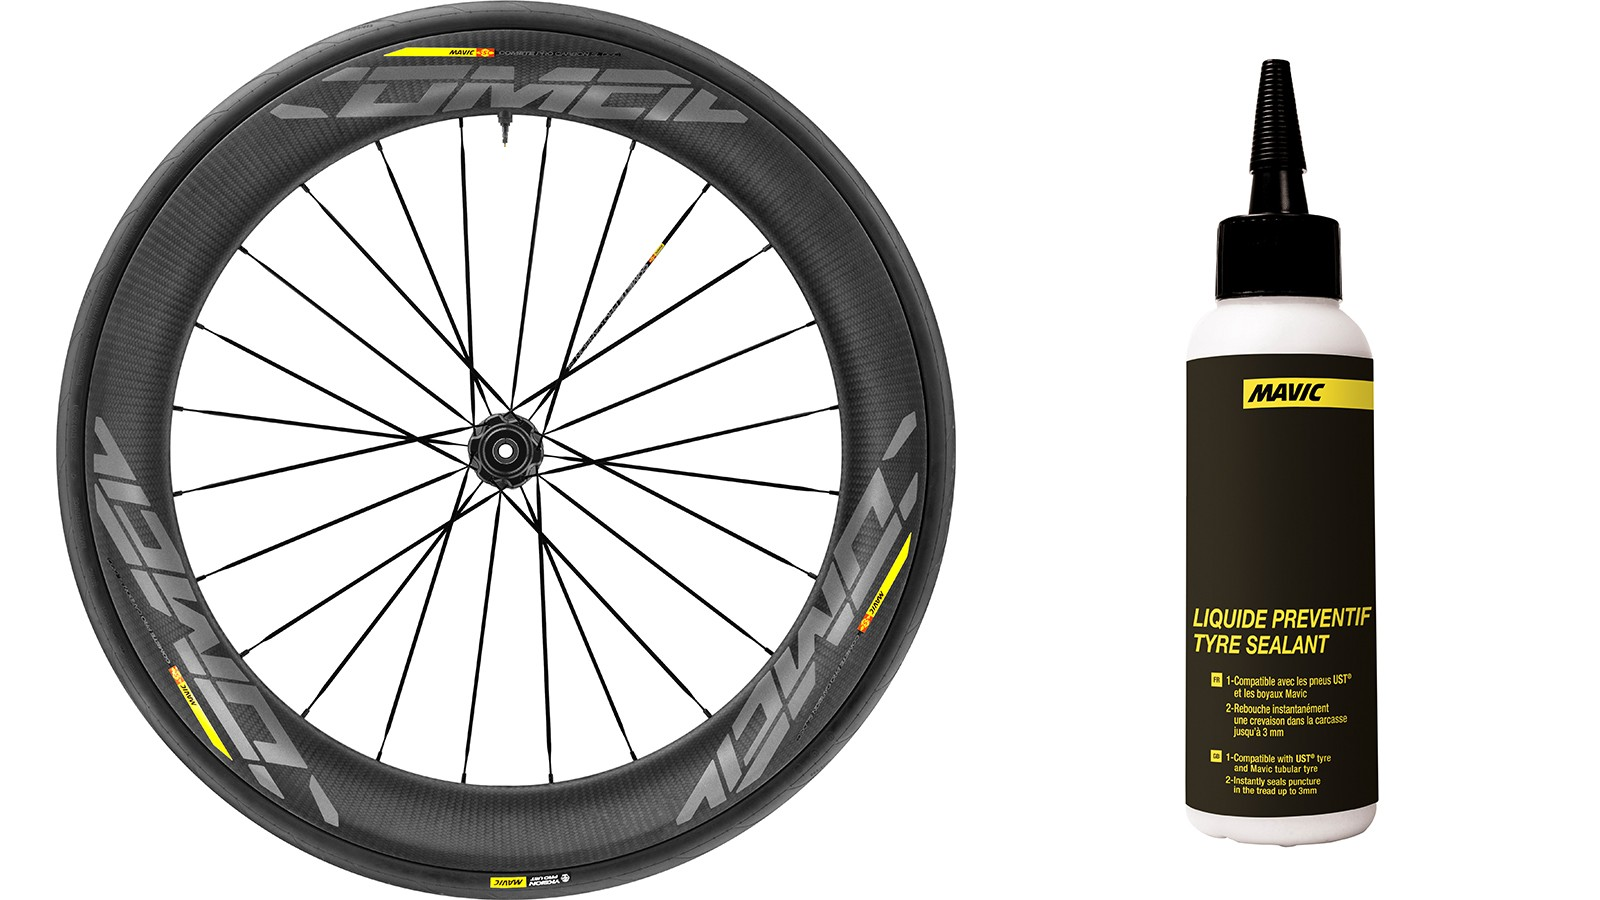 a729d968df9 Mavic claims its Road UST system is 15% faster in terms of rolling  resistance than